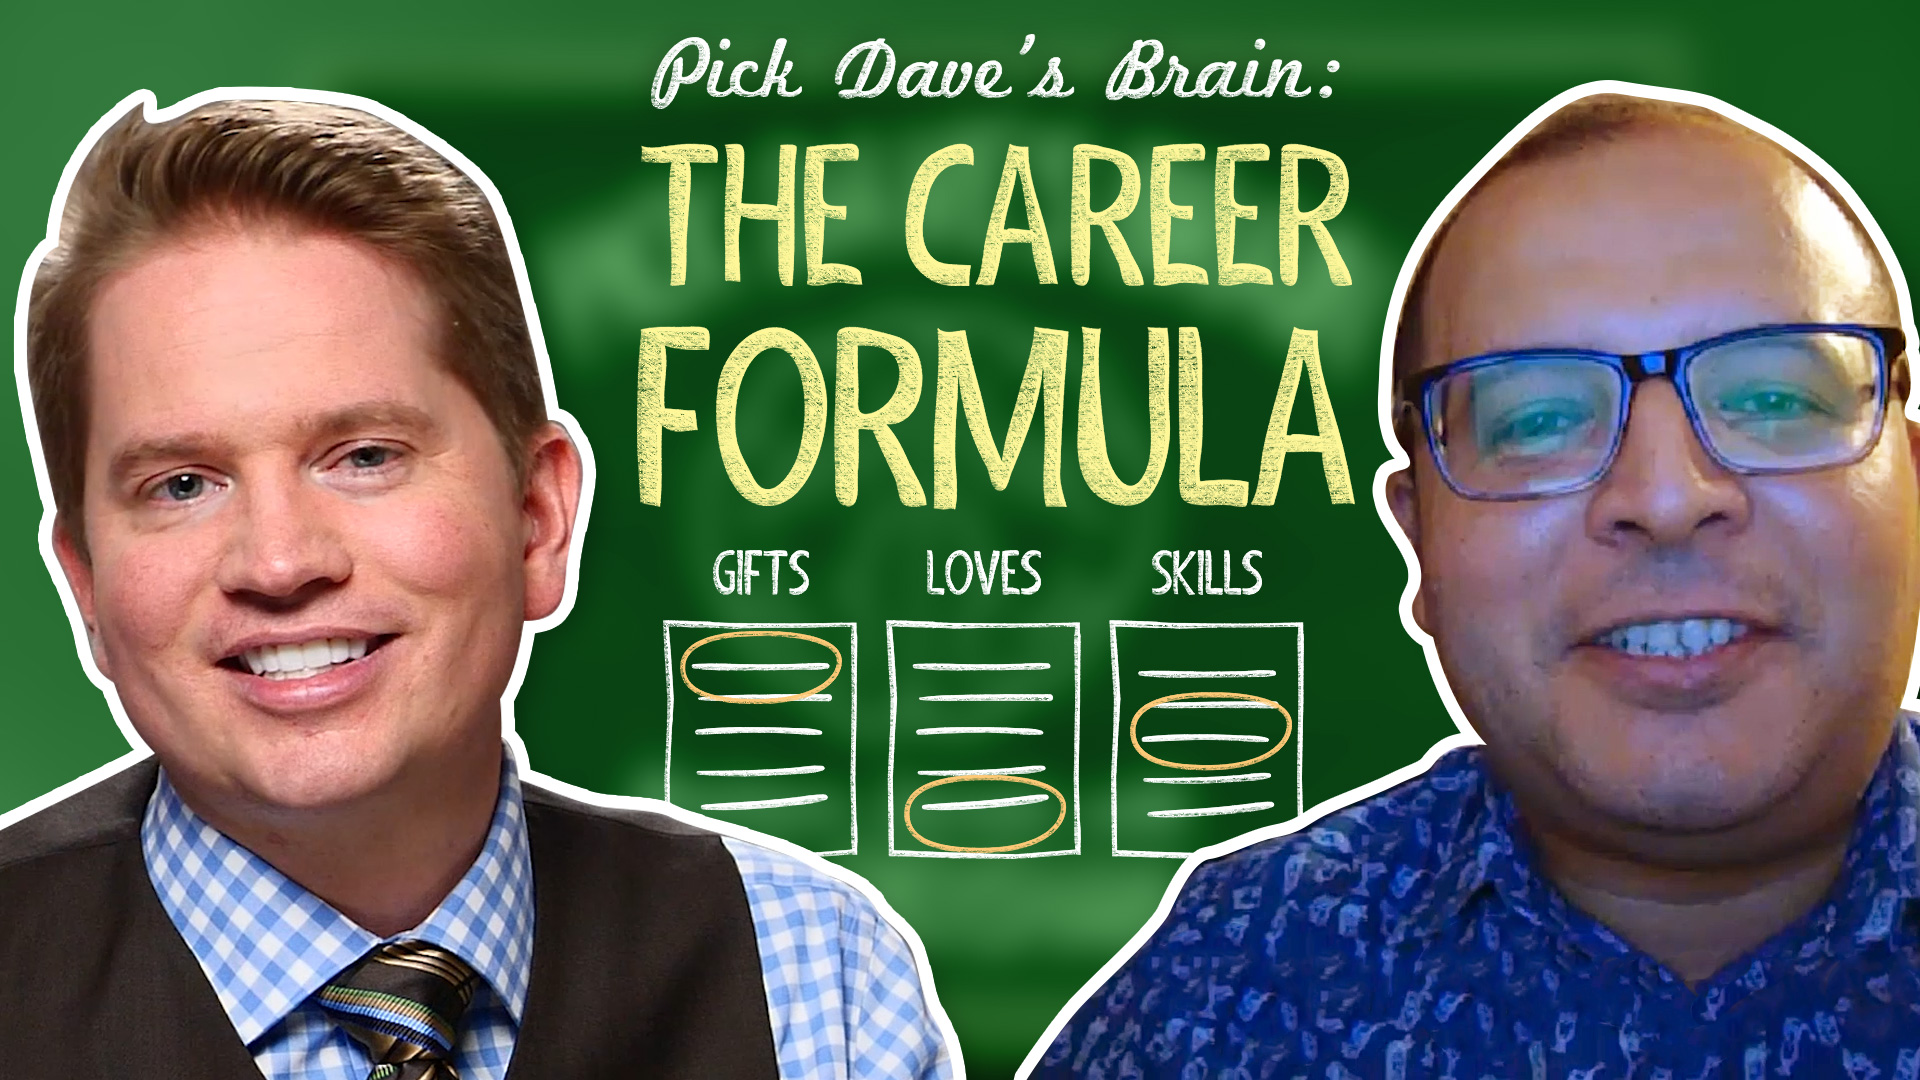 3 Steps to Find Your Dream Career – Pick Dave's Brain